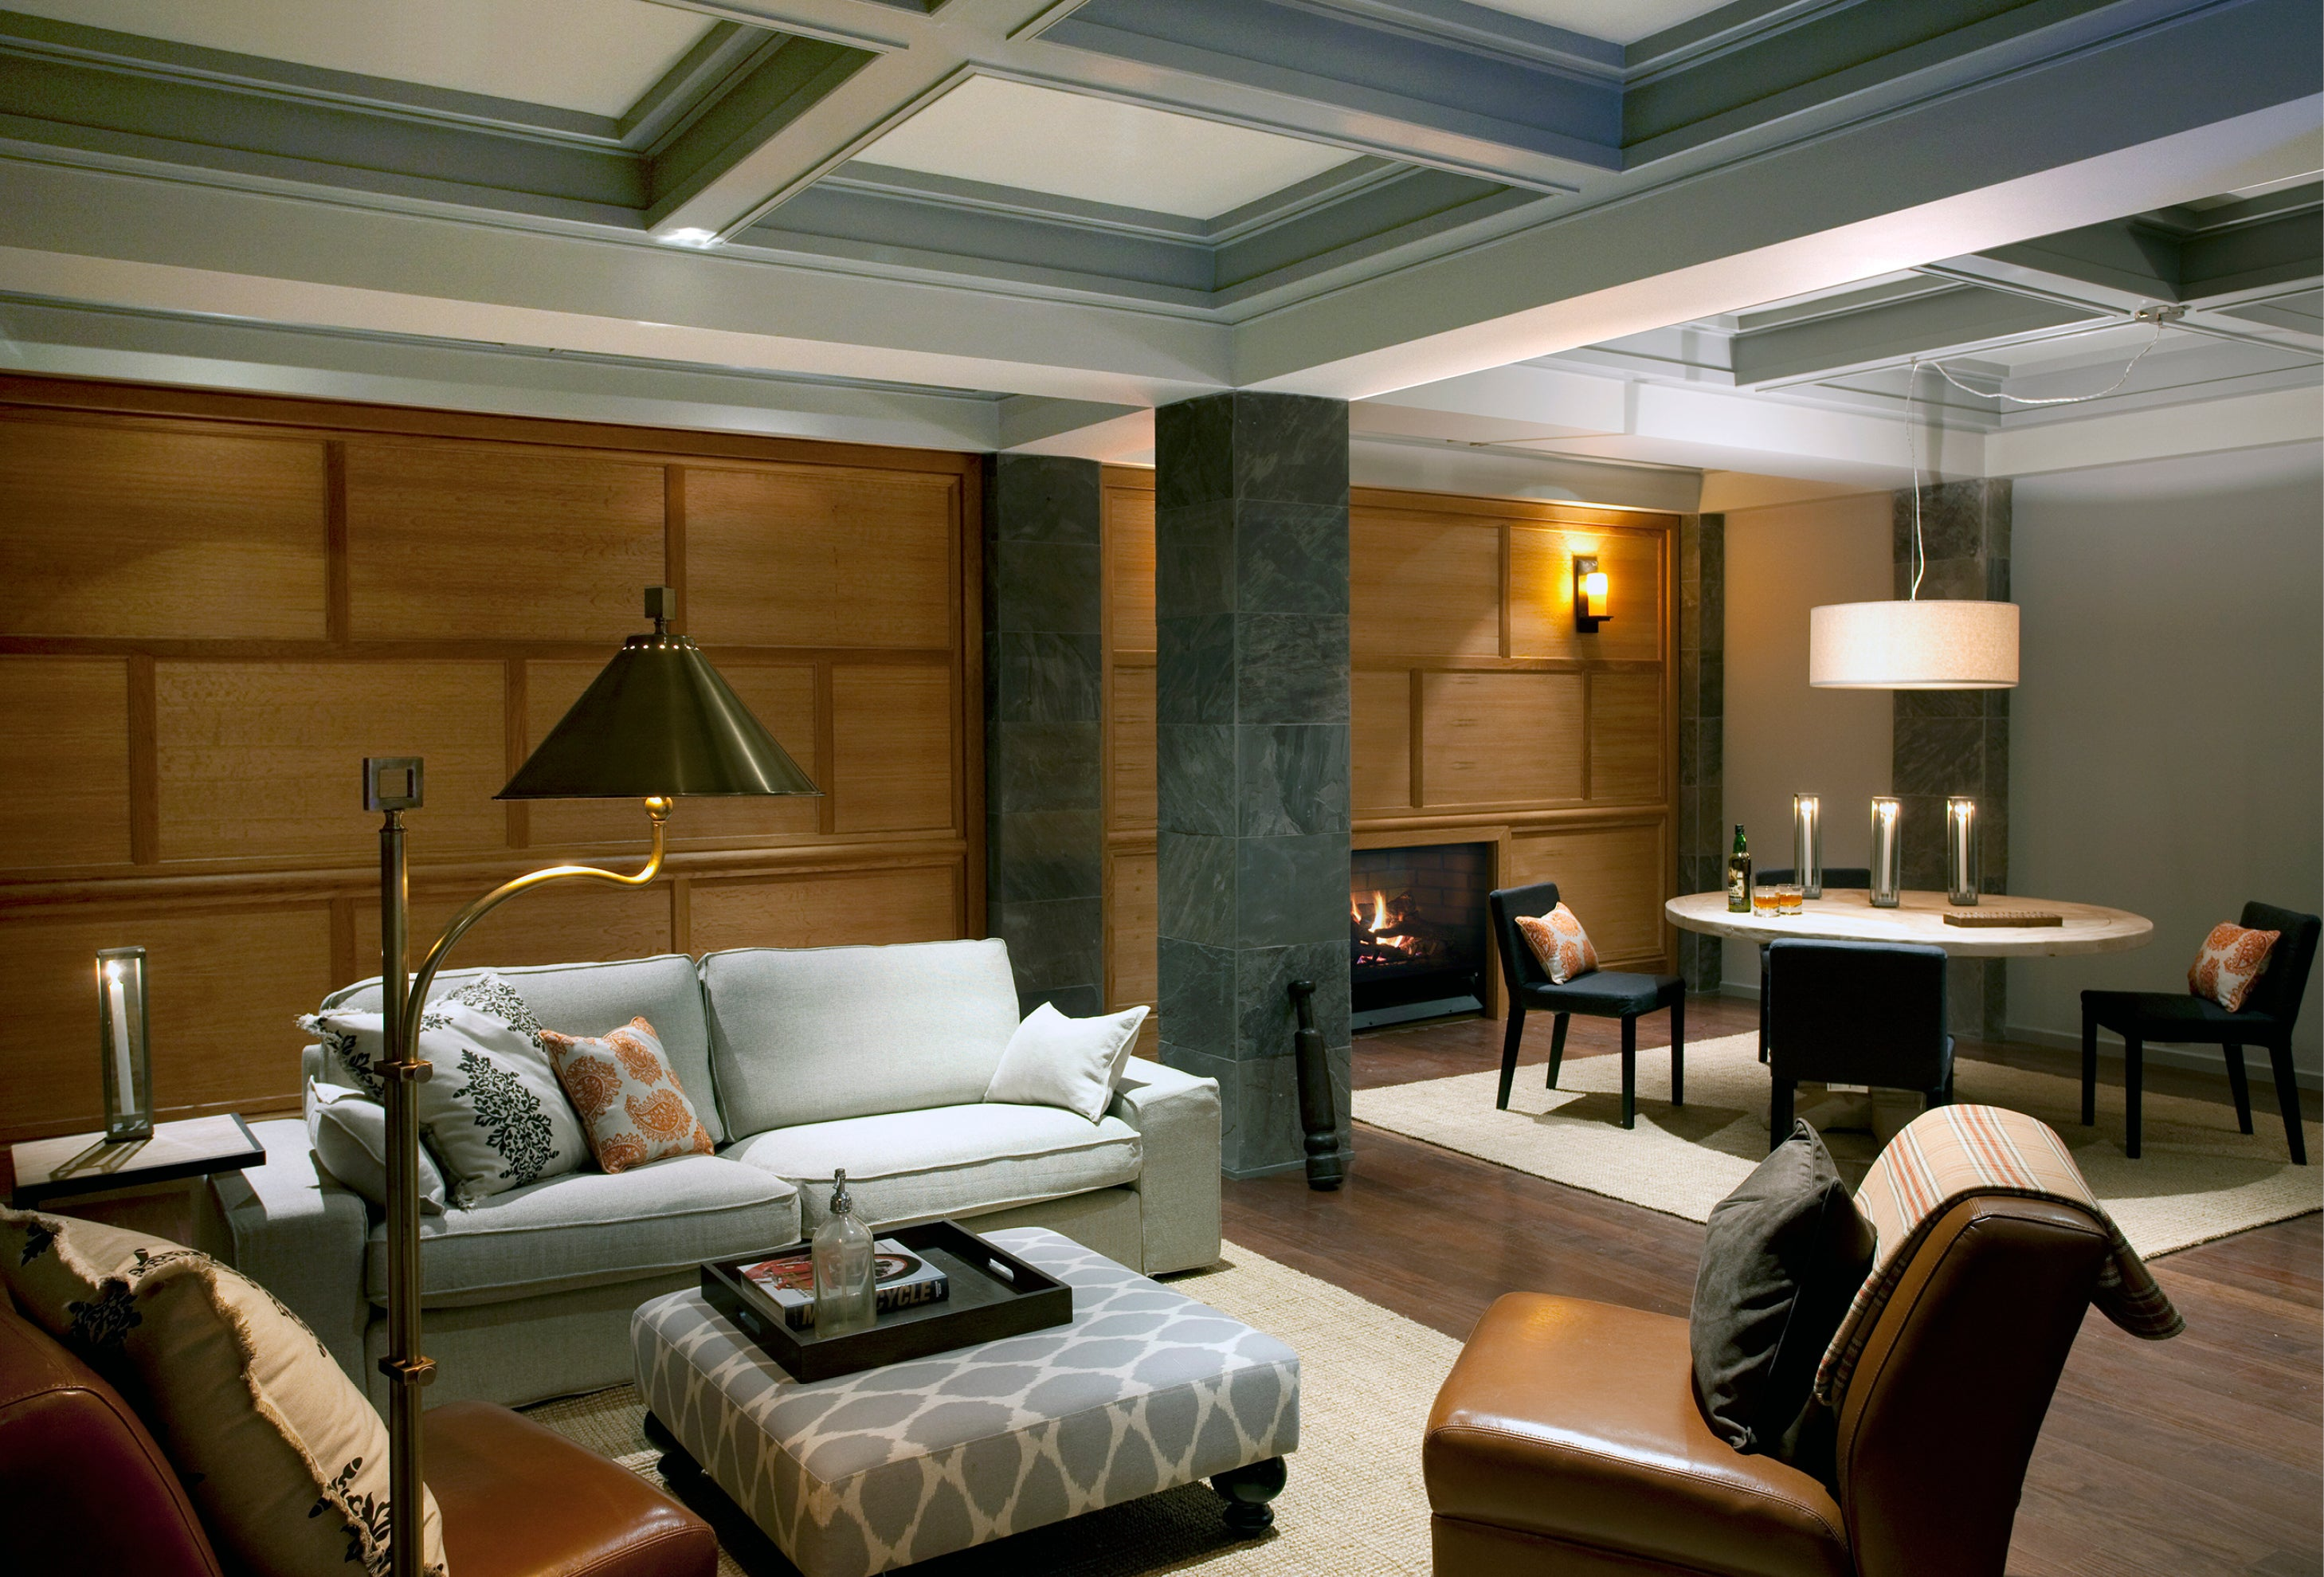 Family Home Design Ideas Amp Pictures On 1stdibs